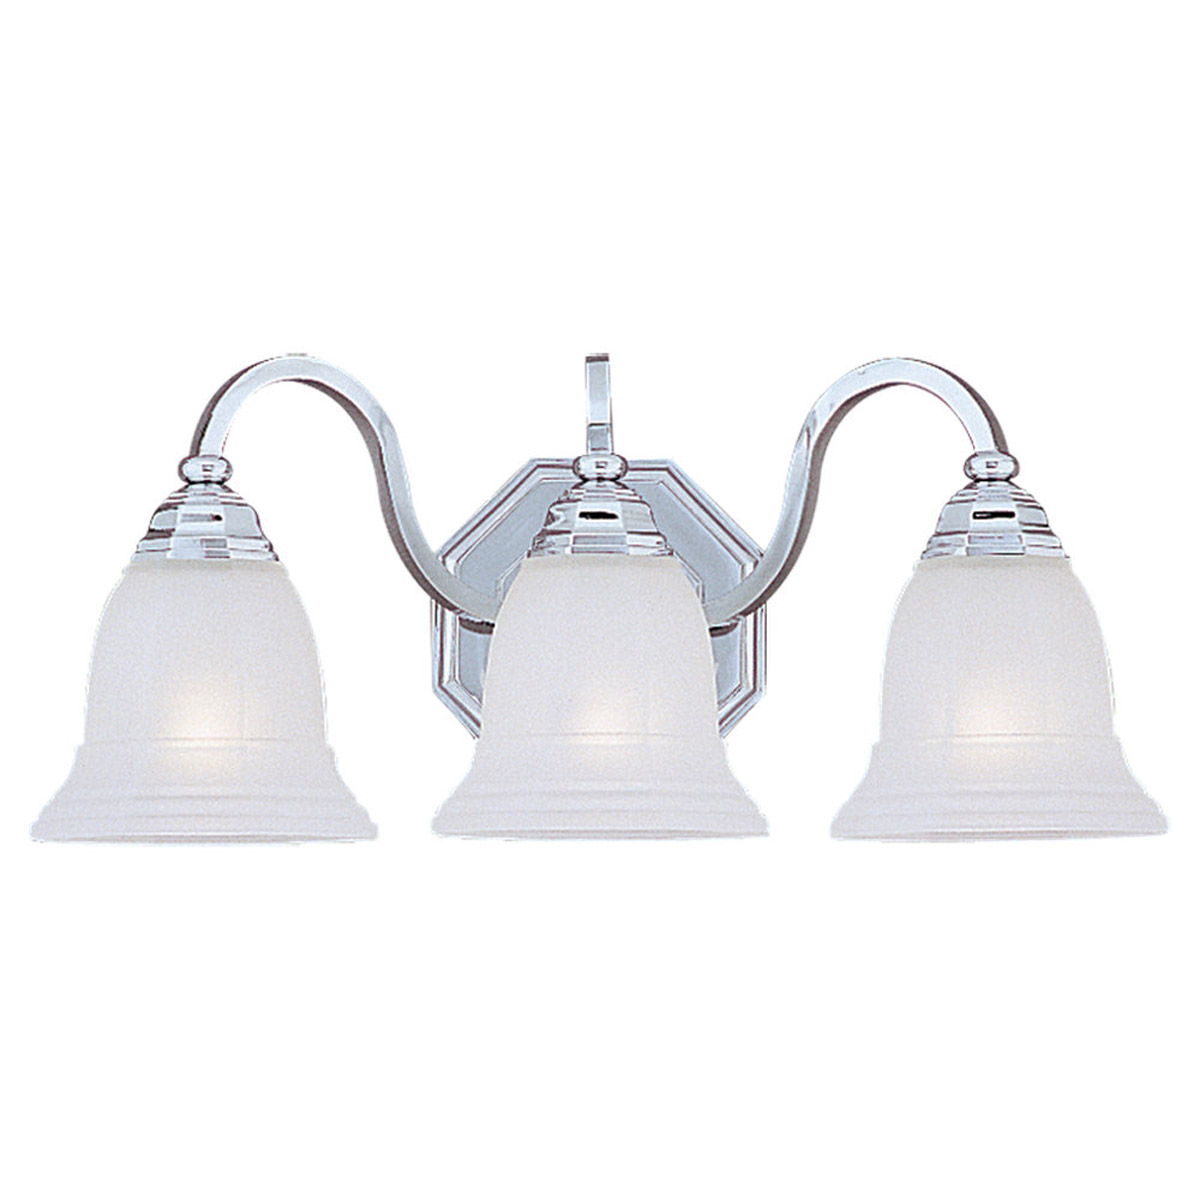 Sea Gull Lighting Blakely 3 Light Bath Vanity in Chrome 4059-05 photo